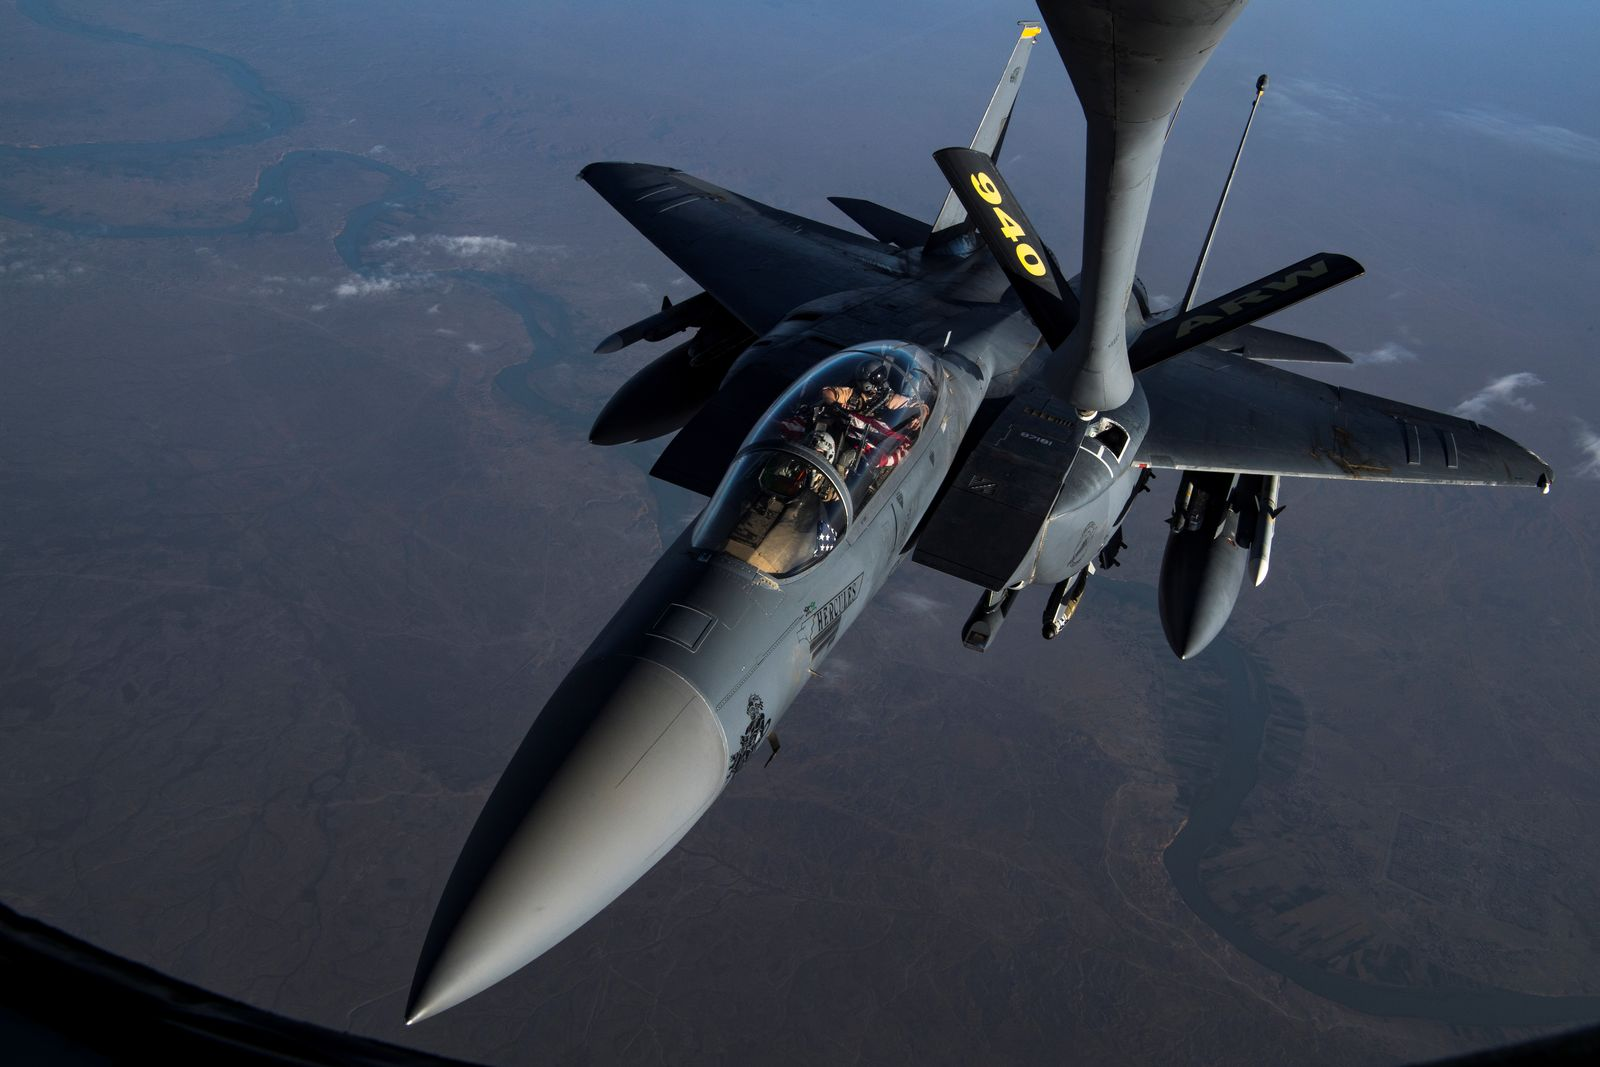 U.S. Military's Stormbreaker All-Weather Bomb for F-15s Is A Big Deal